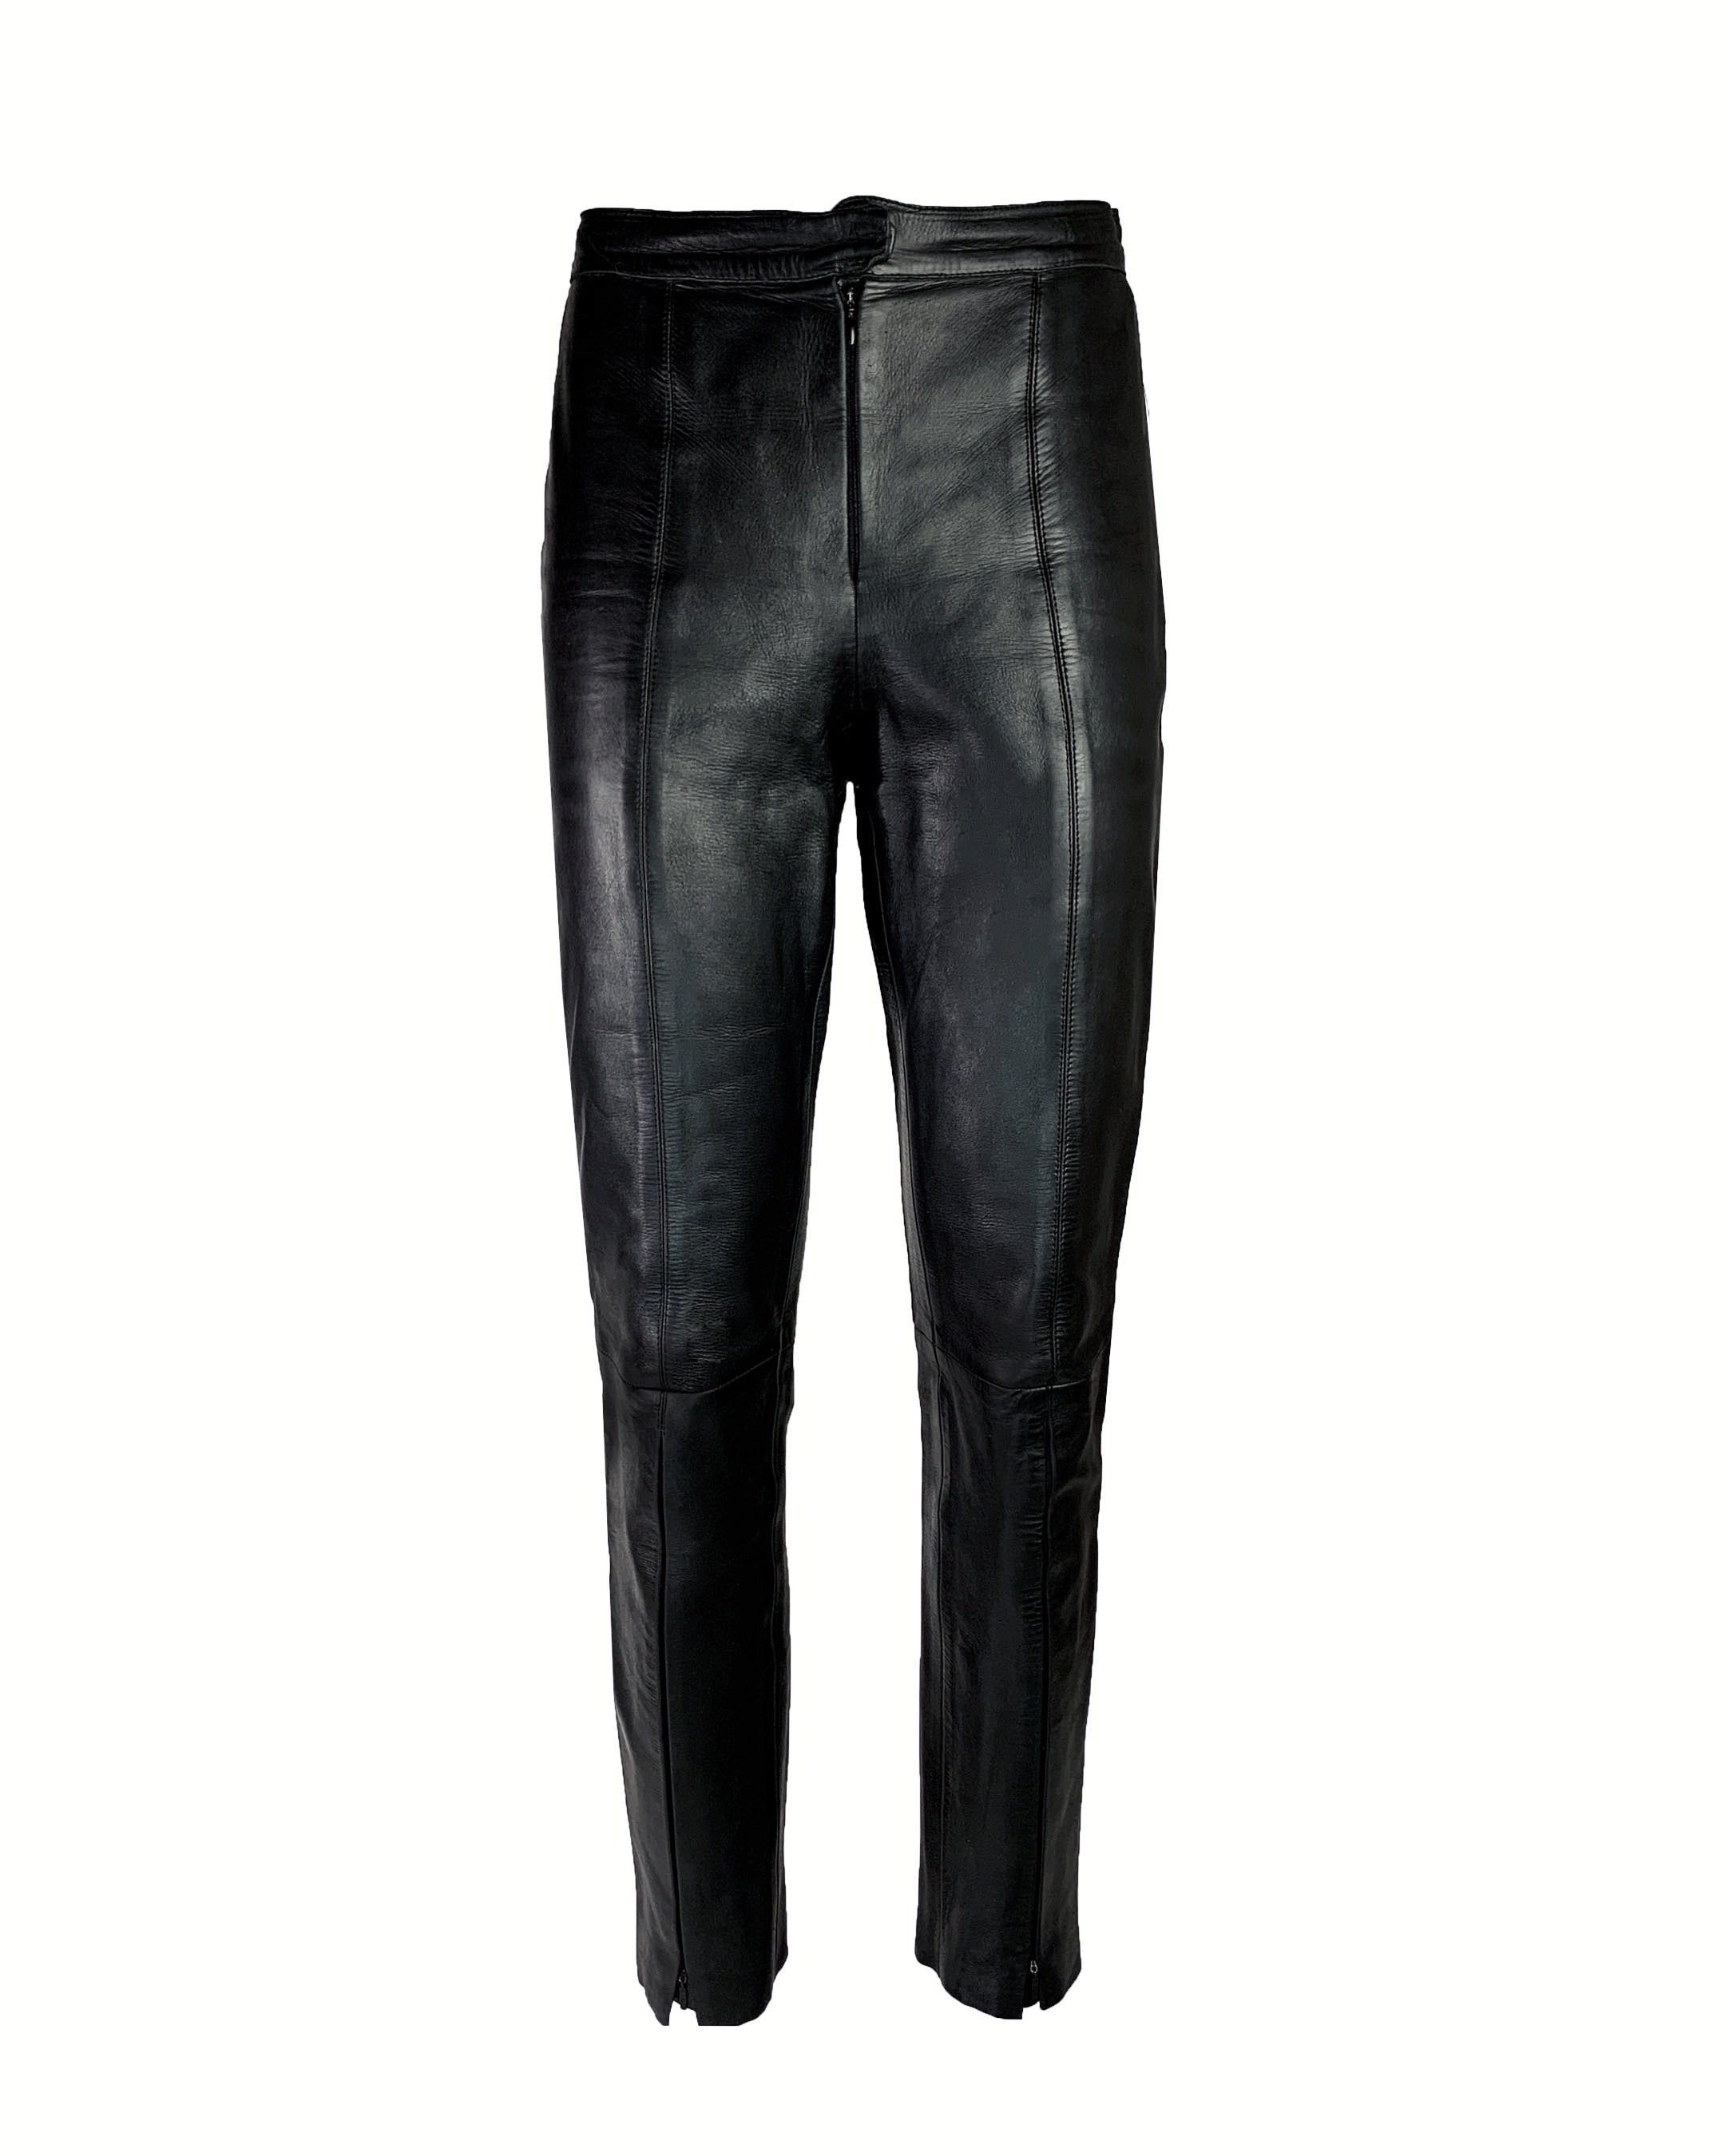 Gucci Spring 1999 Leather Pants